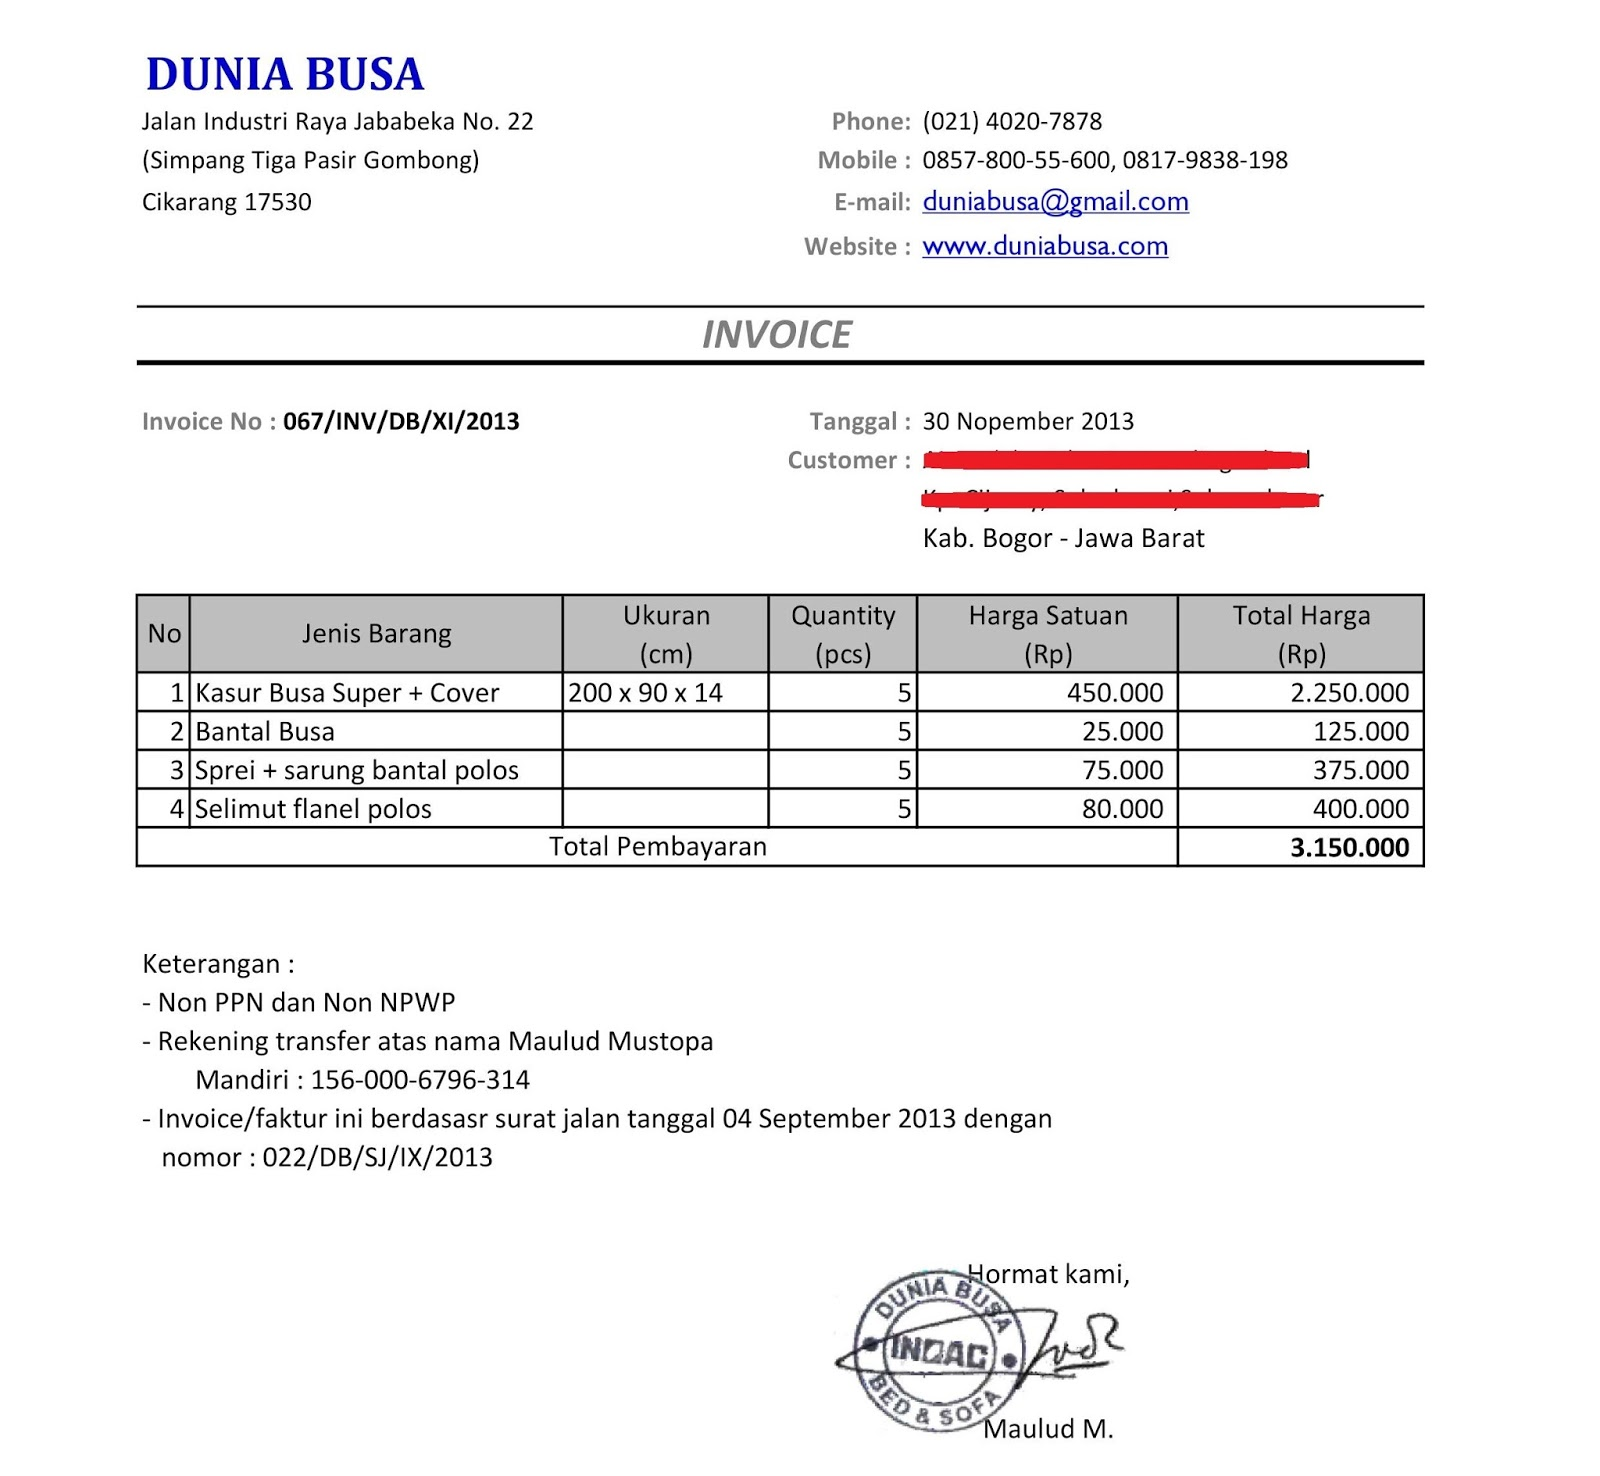 Centralasianshepherdus  Wonderful Free Invoice Online  Create Invoice Online  Invoice Template  With Inspiring Contoh Format Invoice Atau Surat Tagihan  Brankas Arsip  Free Invoice Online With Delectable Invoices Also Dealer Invoice Price In Addition Free Printable Invoice And Adp Open Invoice As Well As Invoice  Go Additionally Microsoft Word Invoice Template From Sklepco With Centralasianshepherdus  Inspiring Free Invoice Online  Create Invoice Online  Invoice Template  With Delectable Contoh Format Invoice Atau Surat Tagihan  Brankas Arsip  Free Invoice Online And Wonderful Invoices Also Dealer Invoice Price In Addition Free Printable Invoice From Sklepco